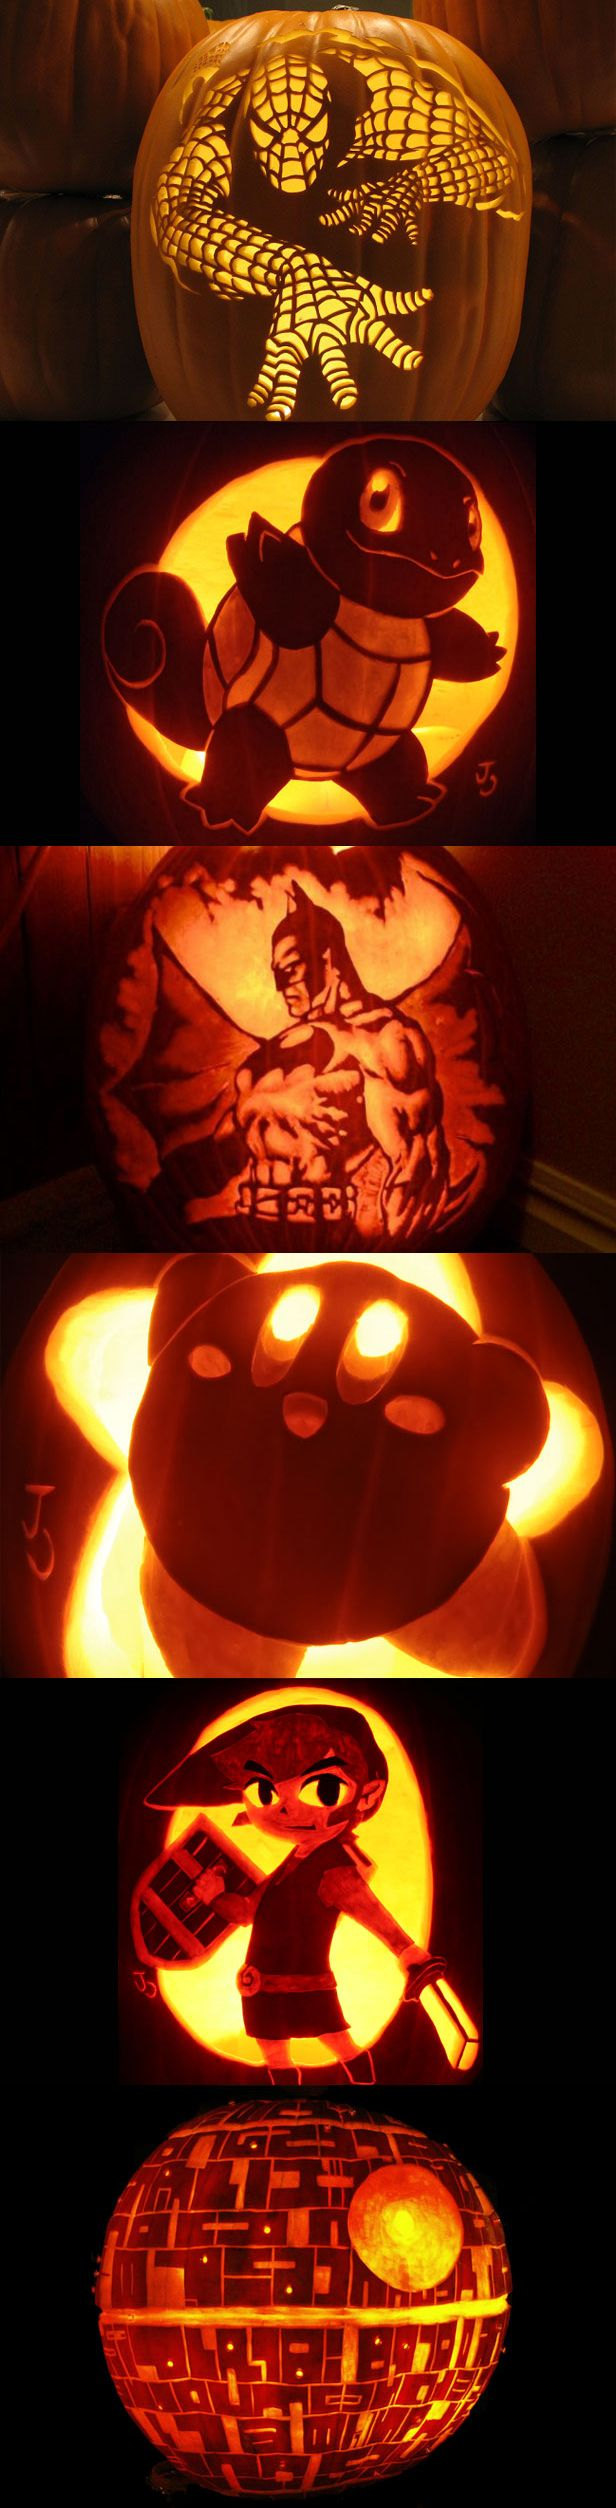 Best 20+ Ideas for pumpkin carving ideas on Pinterest | Pumpkin ...